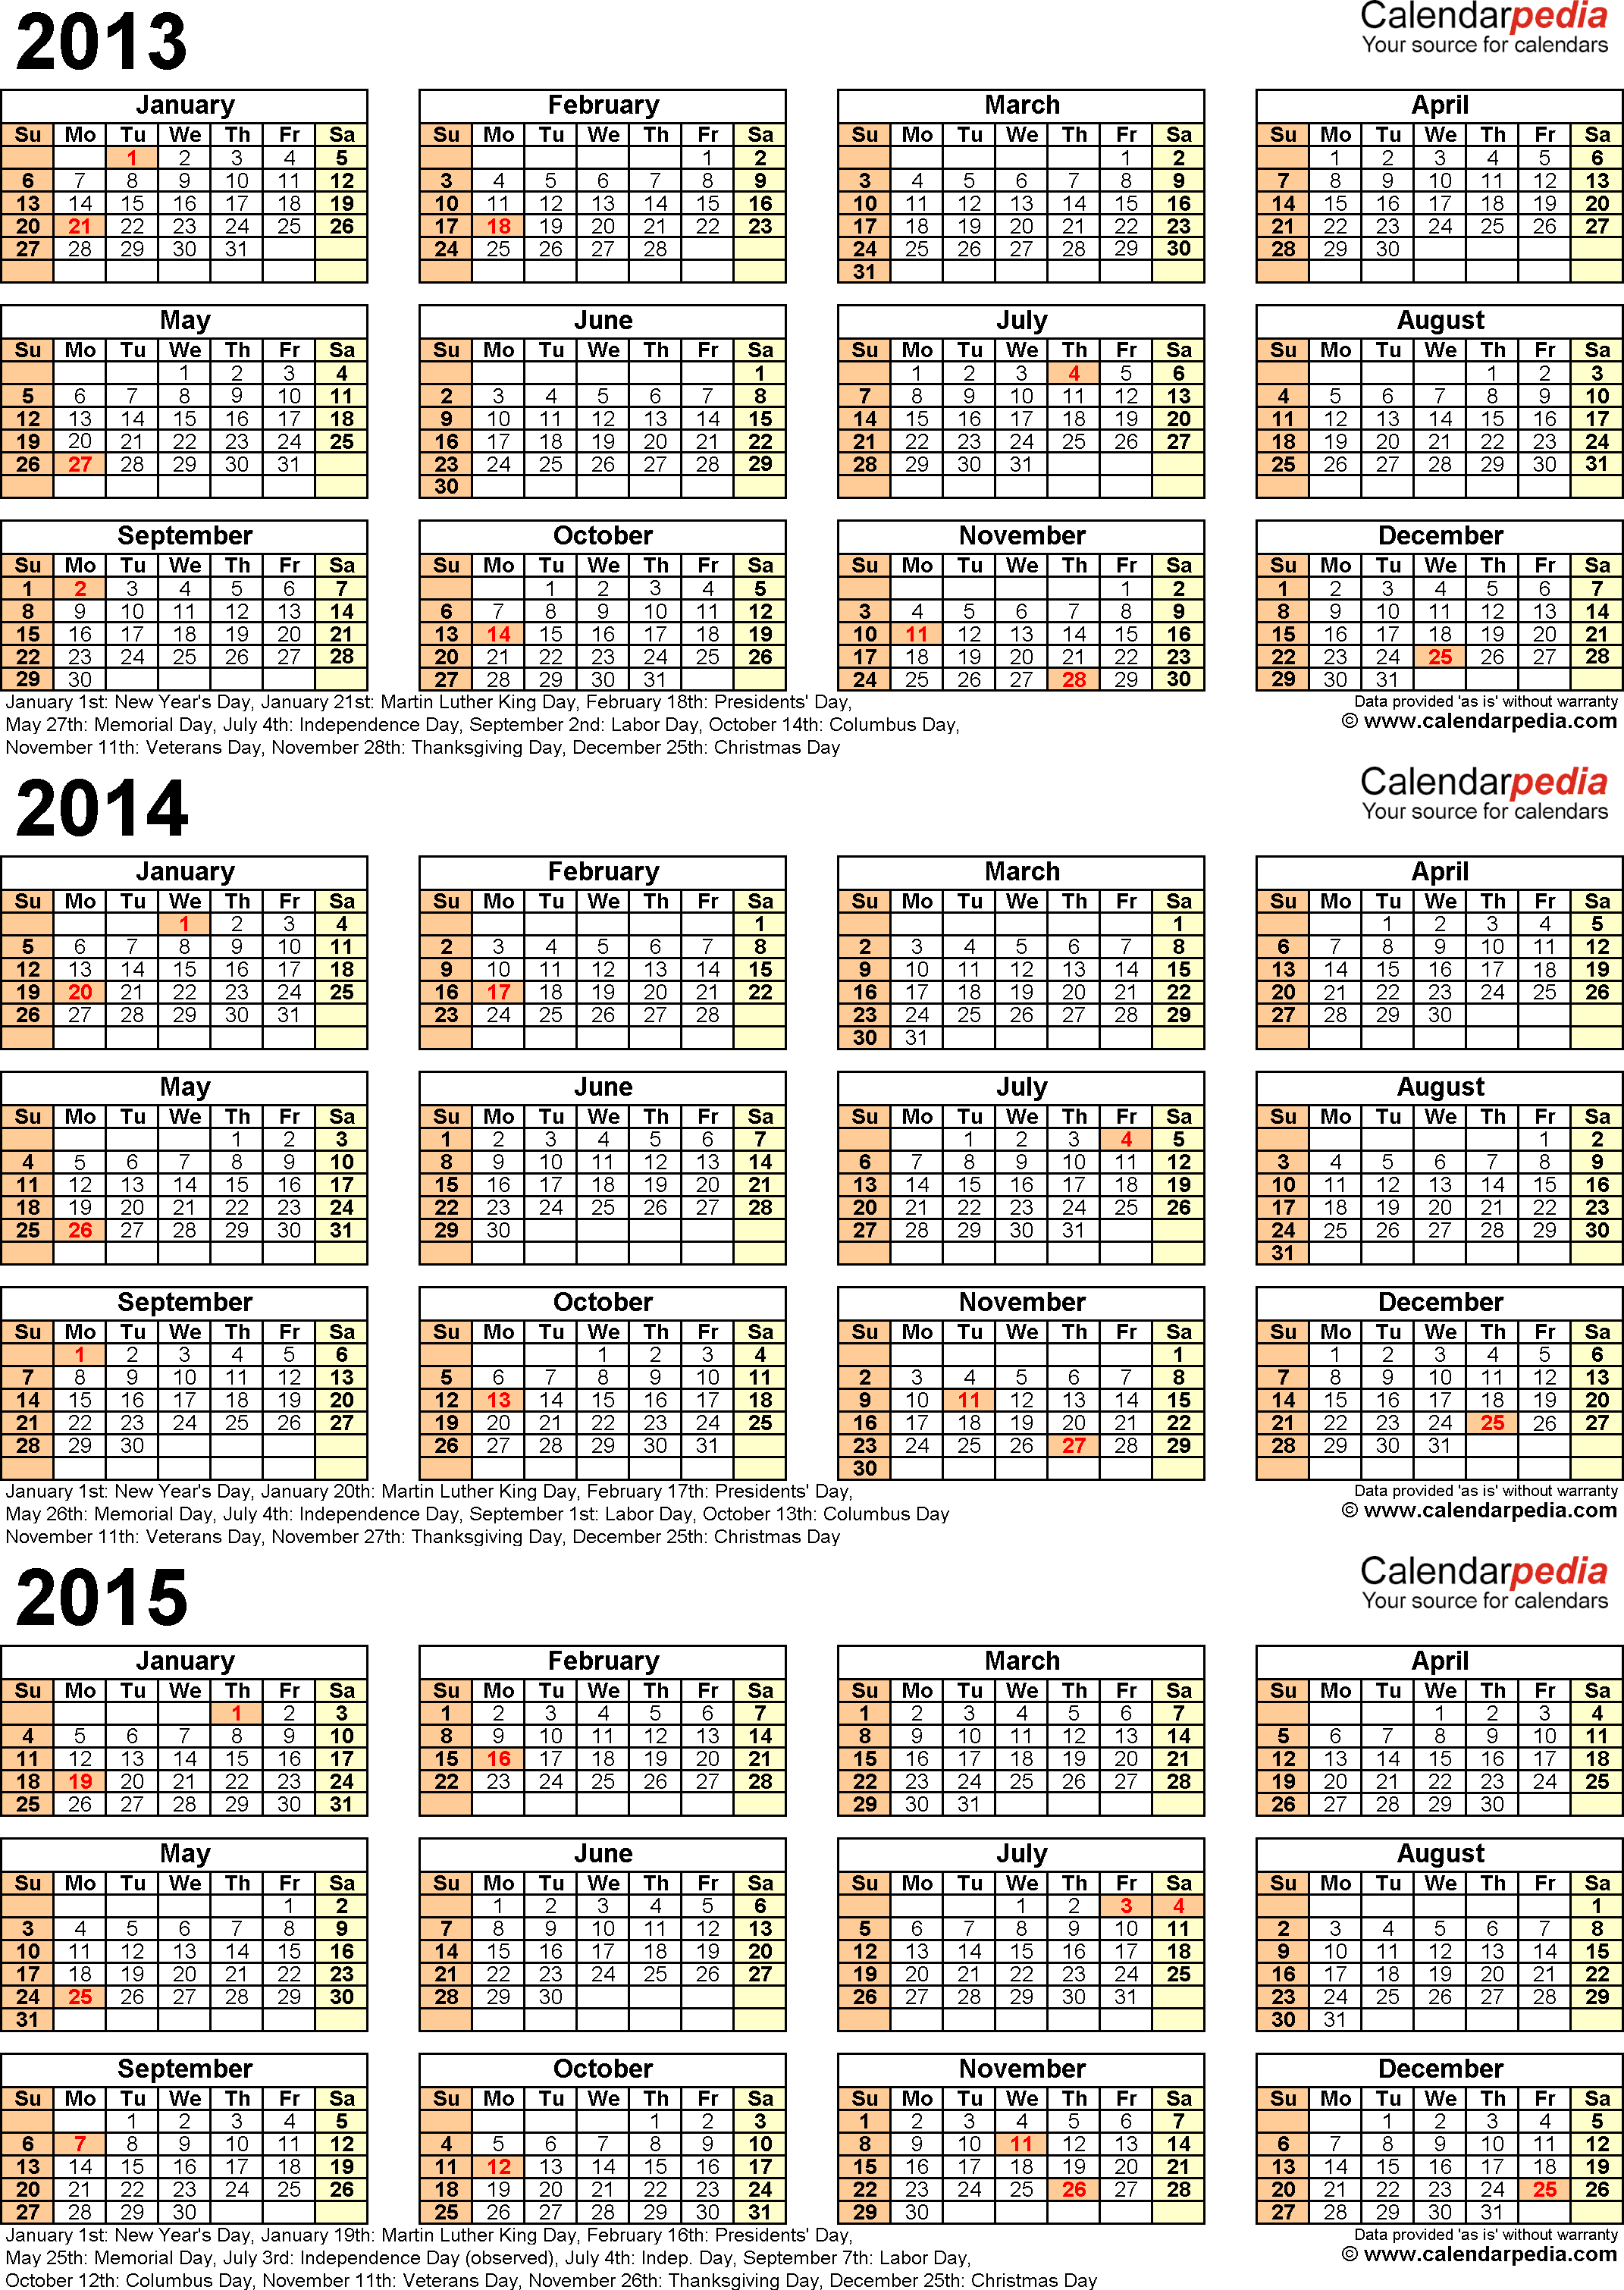 Template 6: PDF template for three year calendar 2013/2014/2015 (portrait orientation, 1 page)